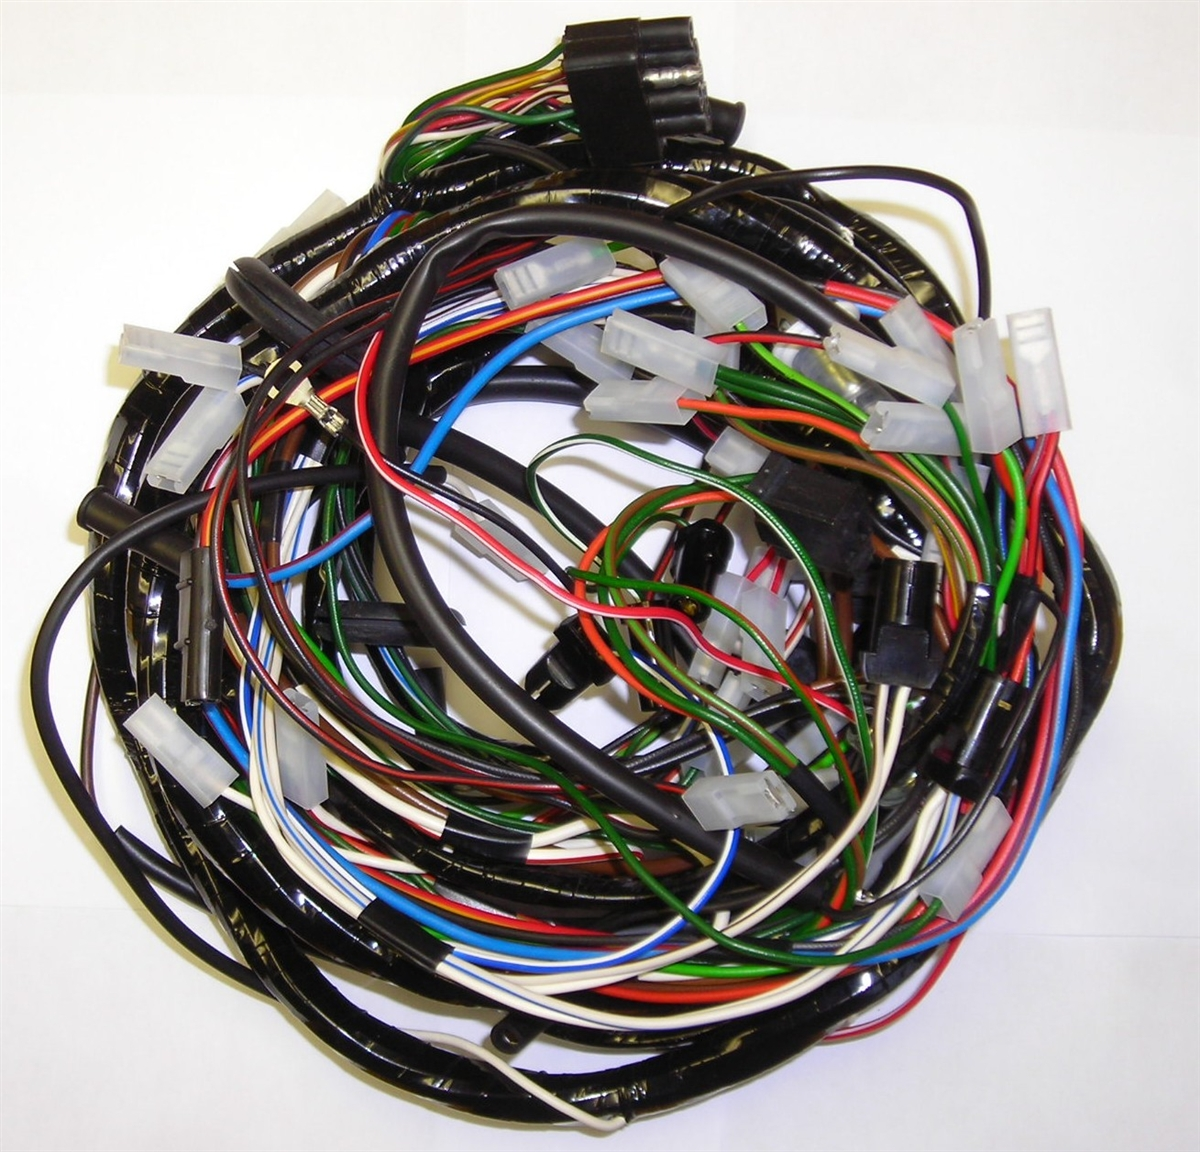 LR306 2?1402646650 rover series 3 main wiring harness 3 wire harness at suagrazia.org